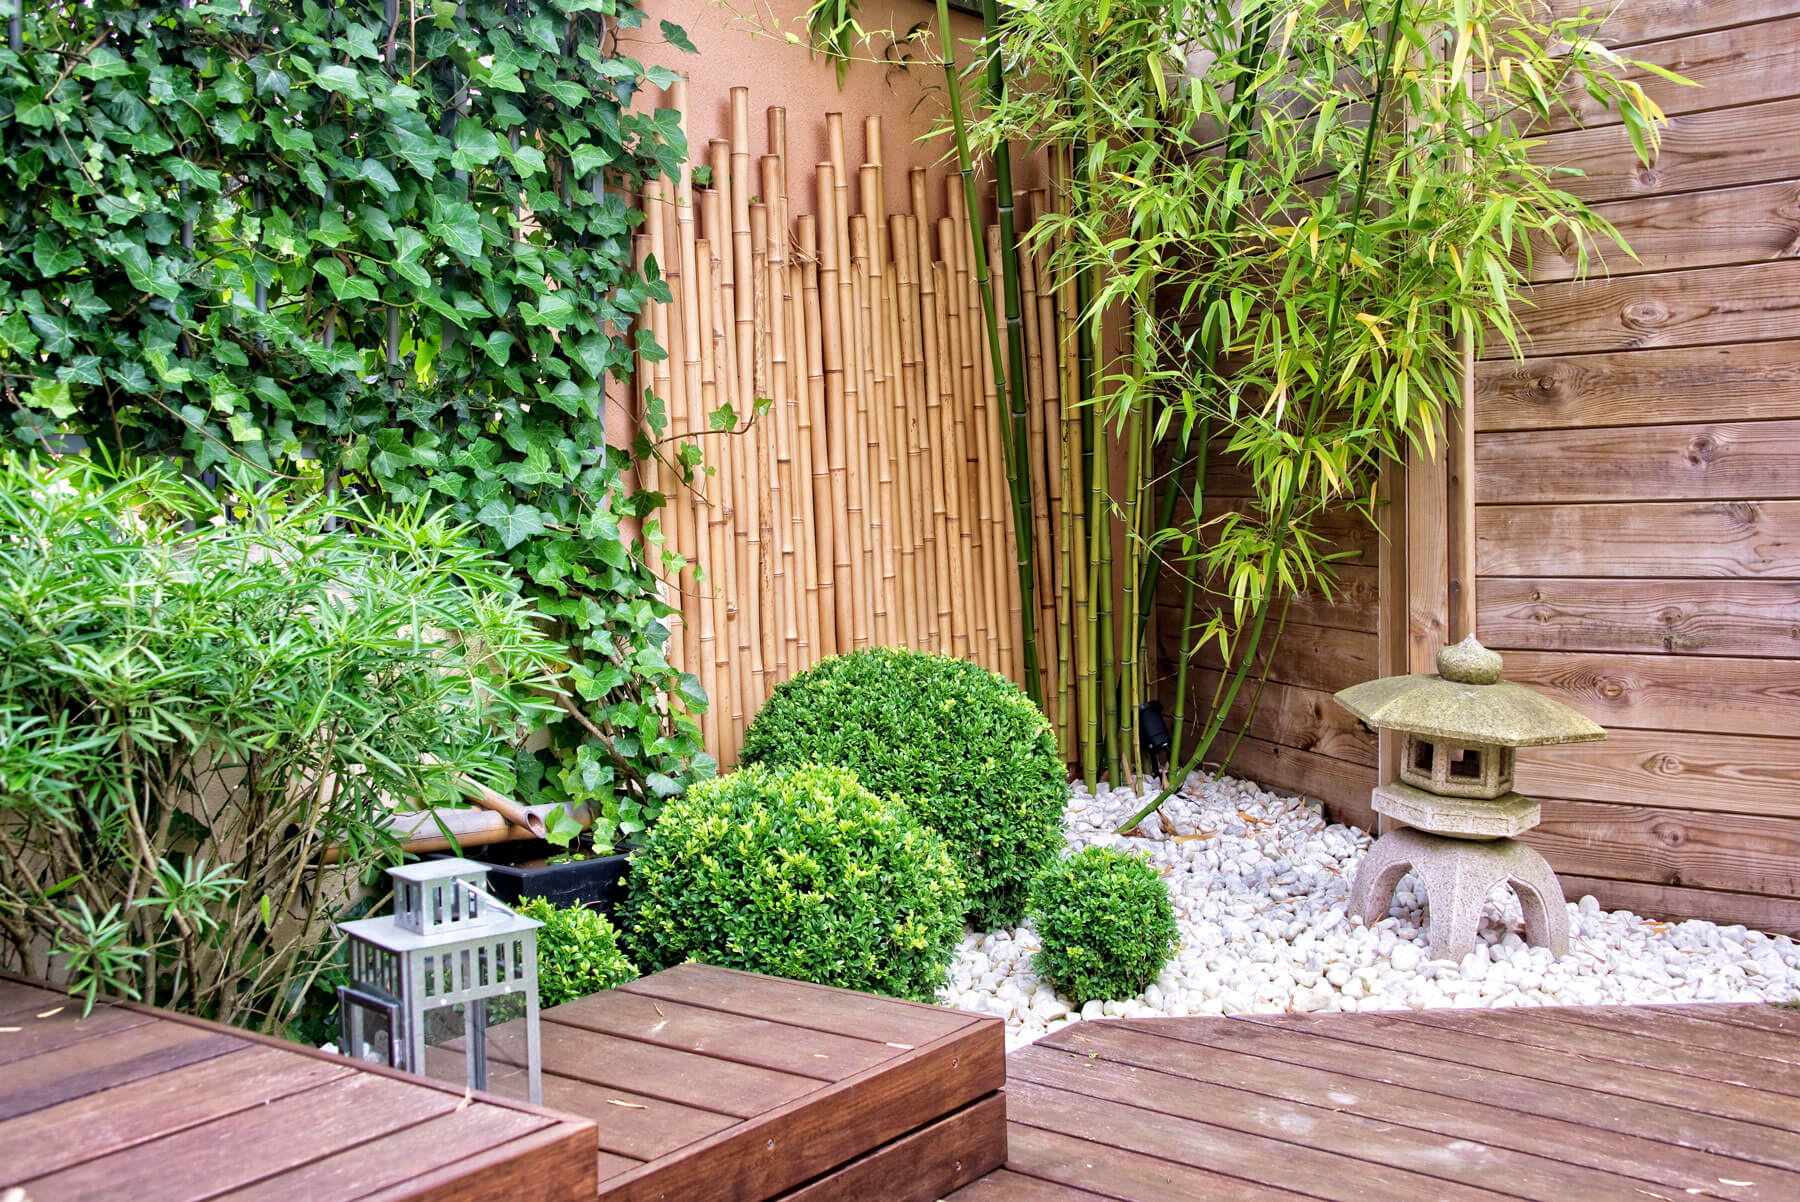 Curious About Using Pebbles And Stones In The Yard, But Not Sure Where To  Begin? Besides Adding A Touch Of Creative Edge, Pebbles, Stones And Rocks  Actually ...